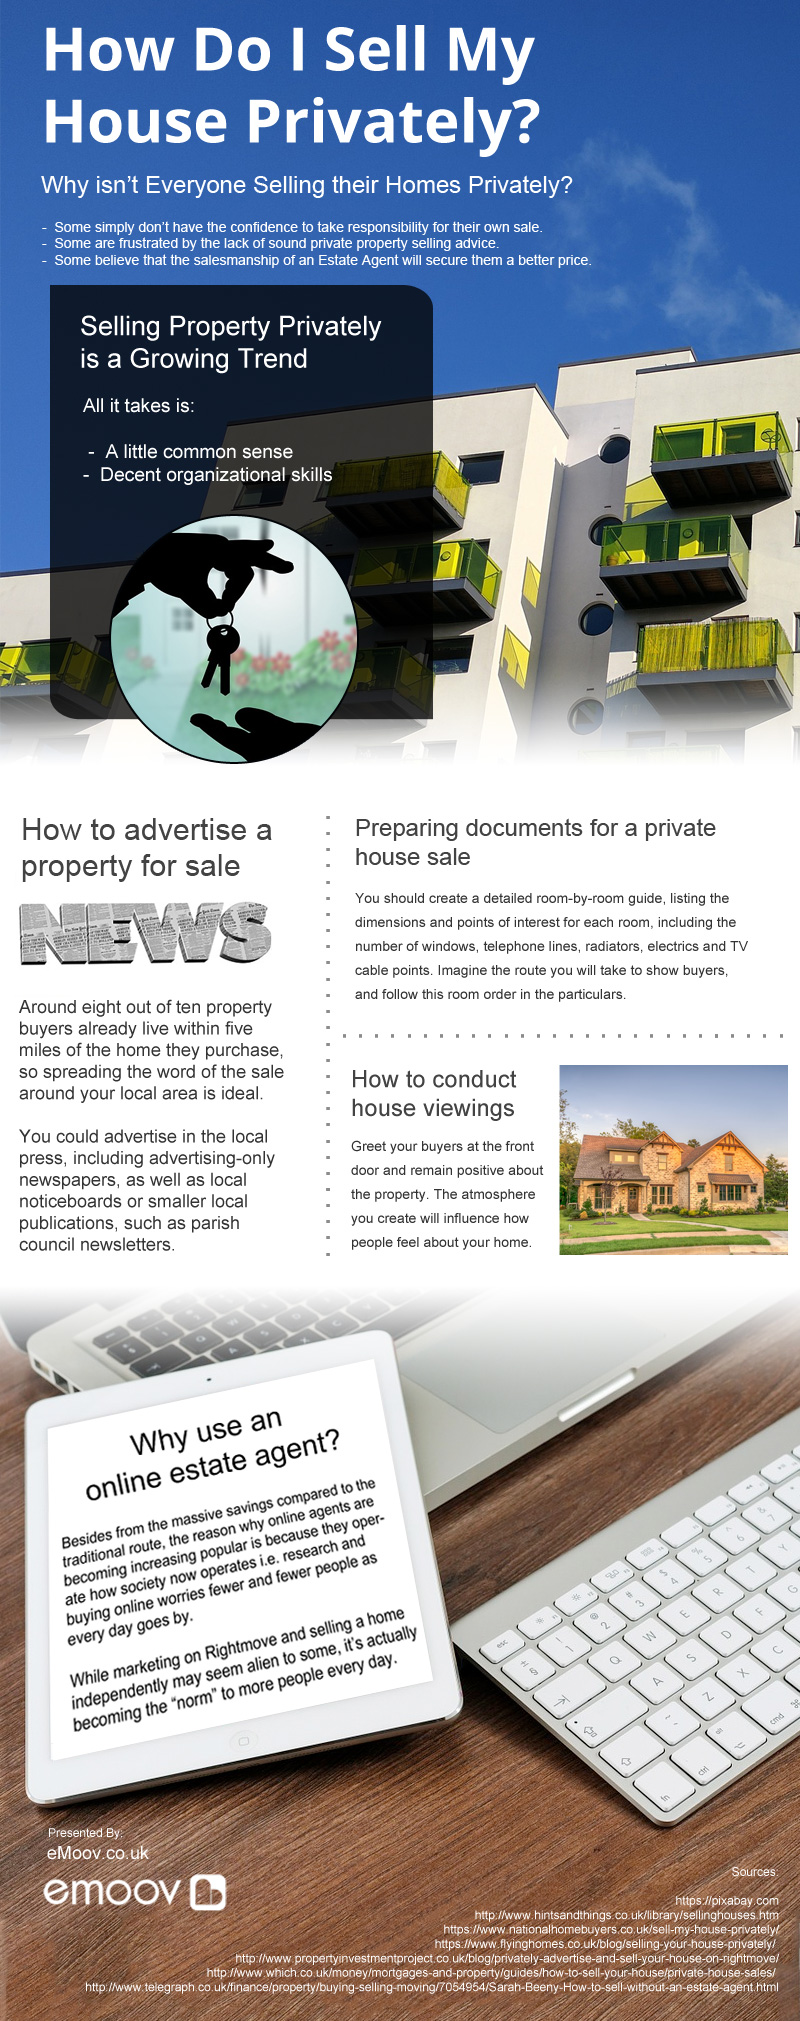 How-do-I-Sell-My-House-Privately